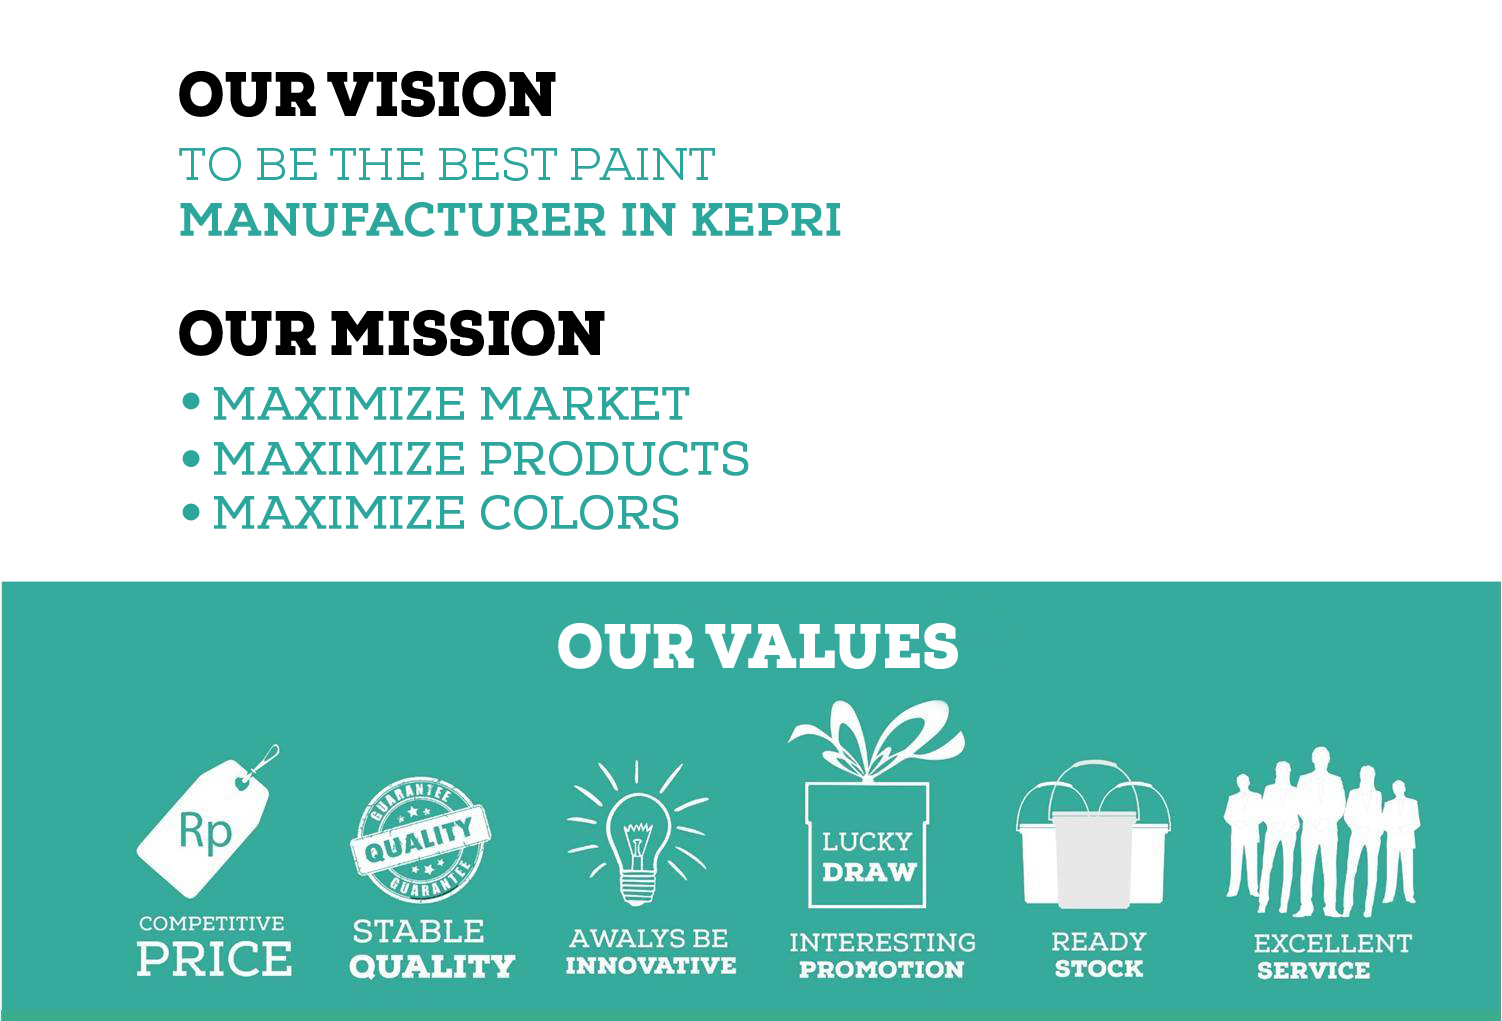 Vision Mission Values